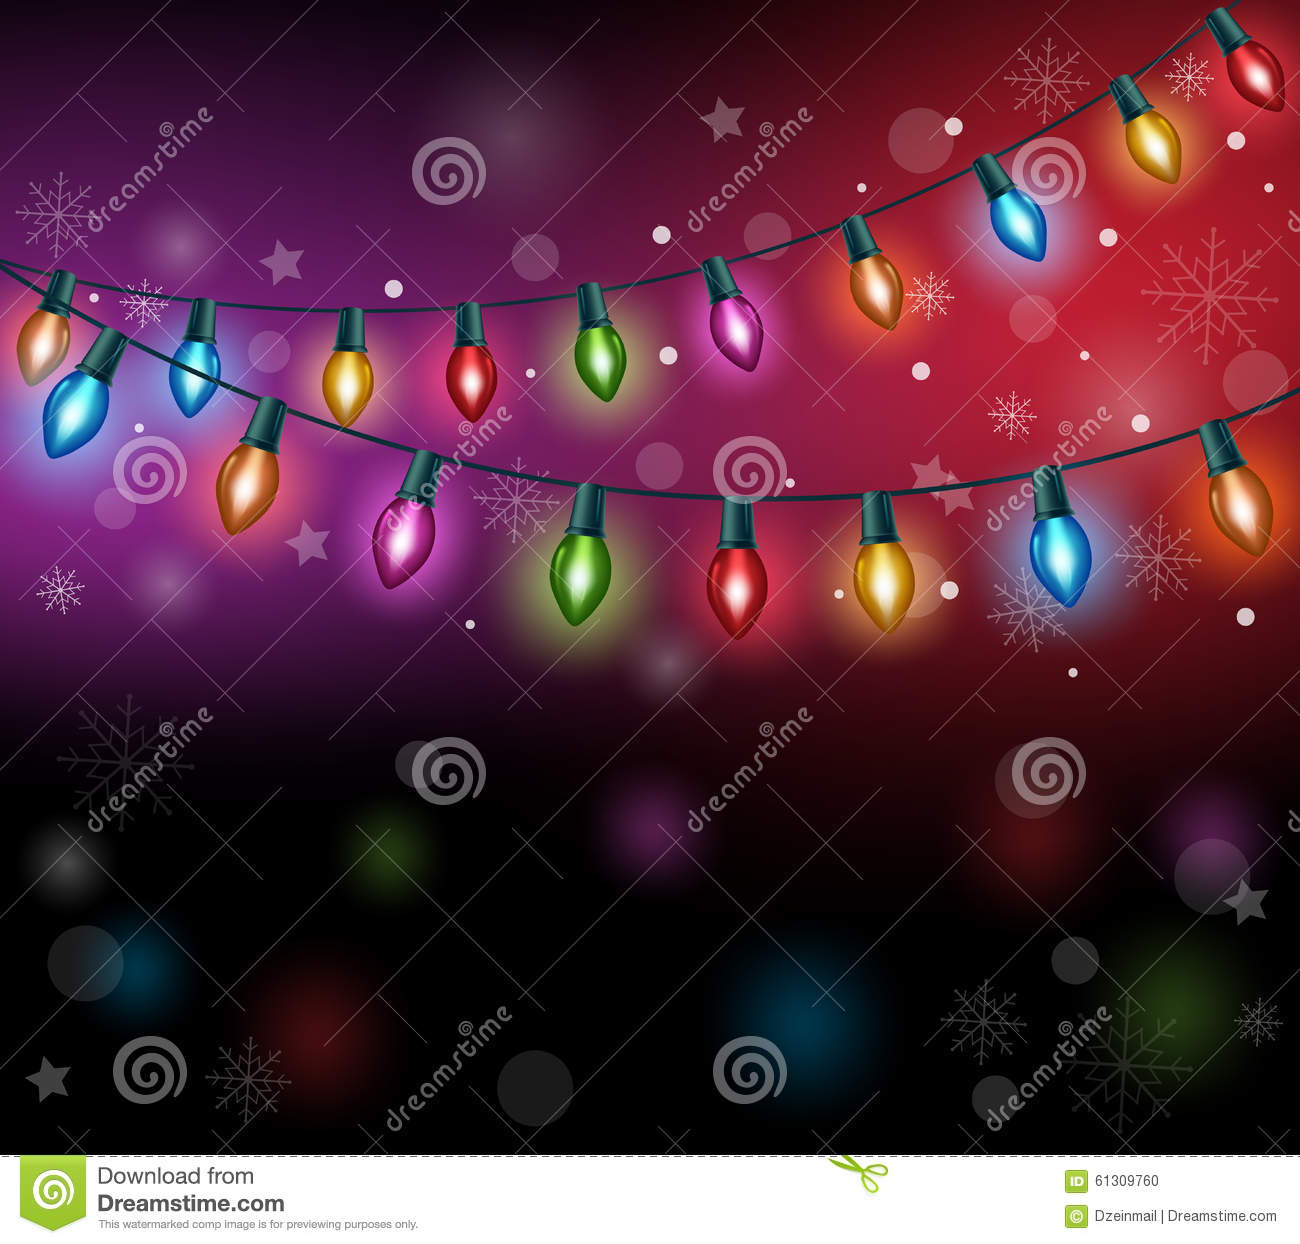 Realistic 3D Colorful Christmas Lights Stock Vector - Illustration ...